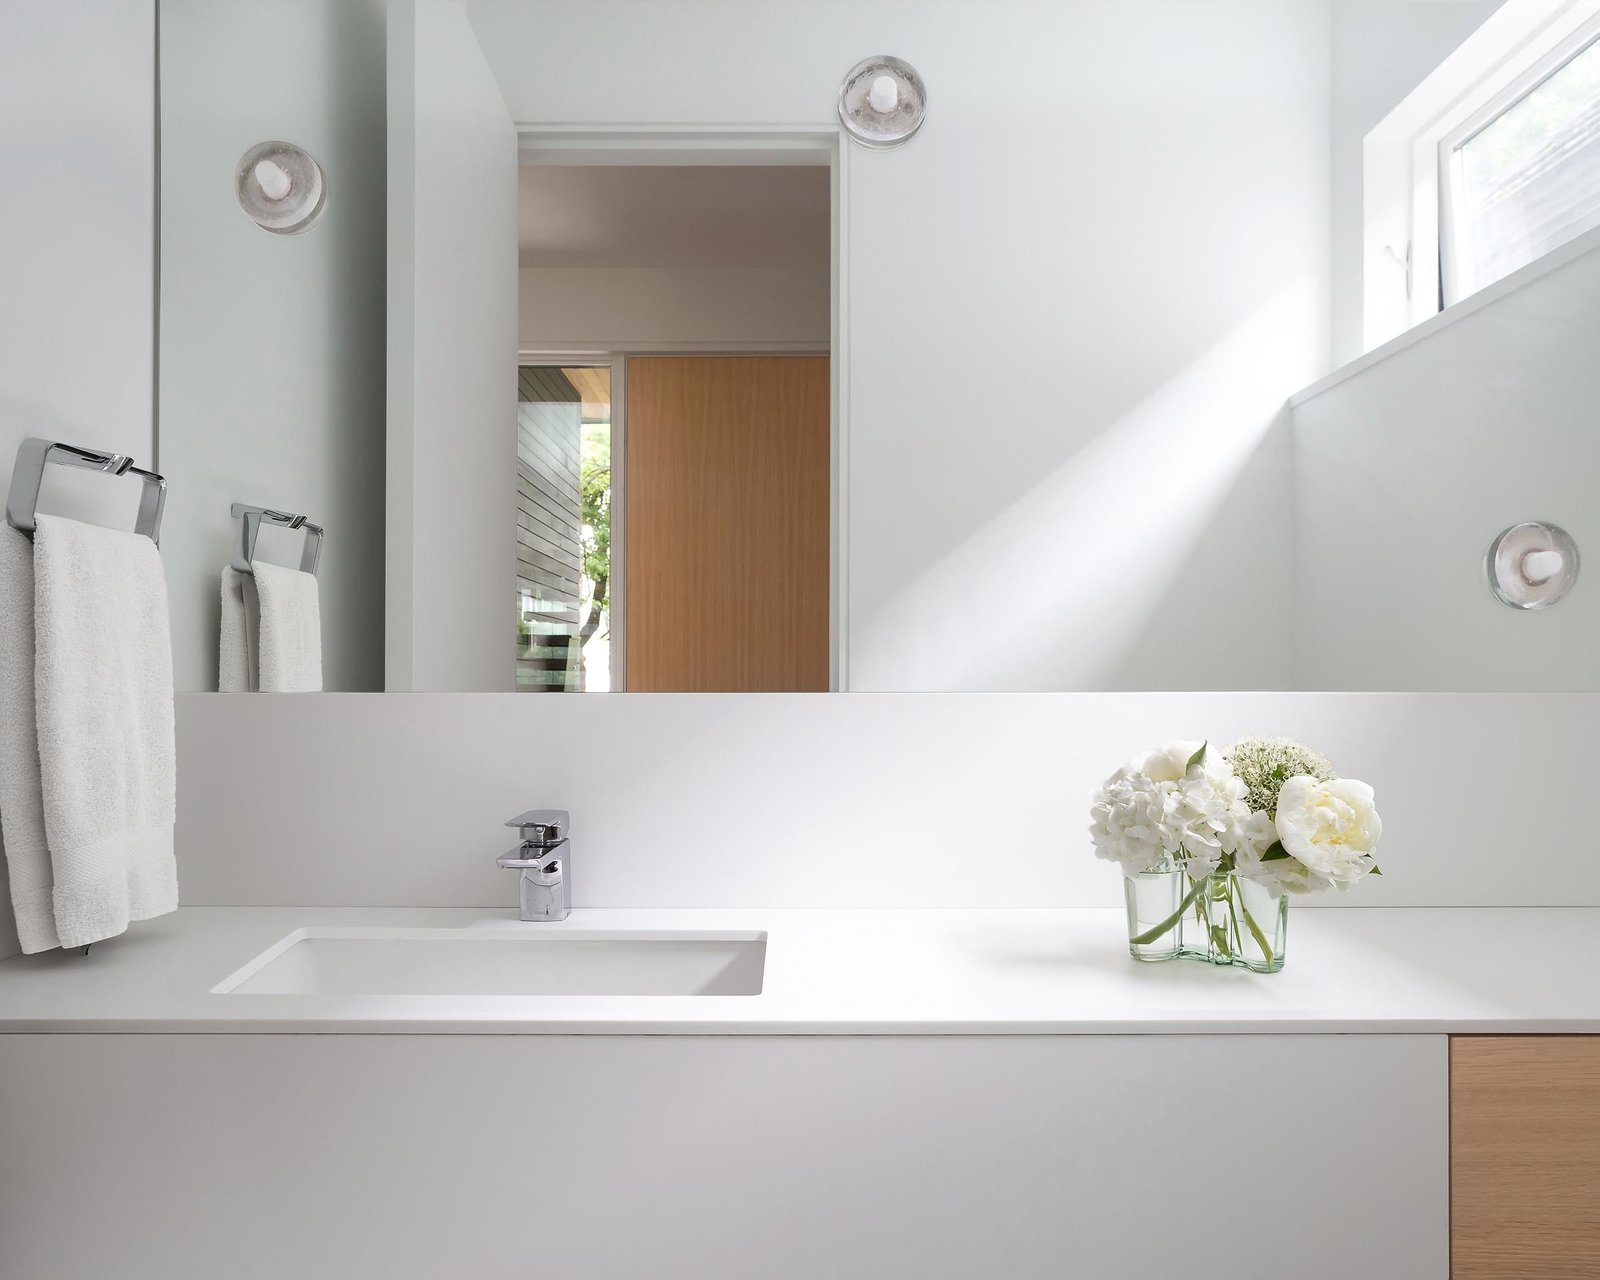 Bath Room, Engineered Quartz Counter, Wall Lighting, and Undermount Sink Bathroom palette blends seamlessly into the whole floor plan with white oak accents and decorative lighting.  Photo 9 of 10 in Custom Millwork and Bright Interiors Star in an Elegant Vancouver Home